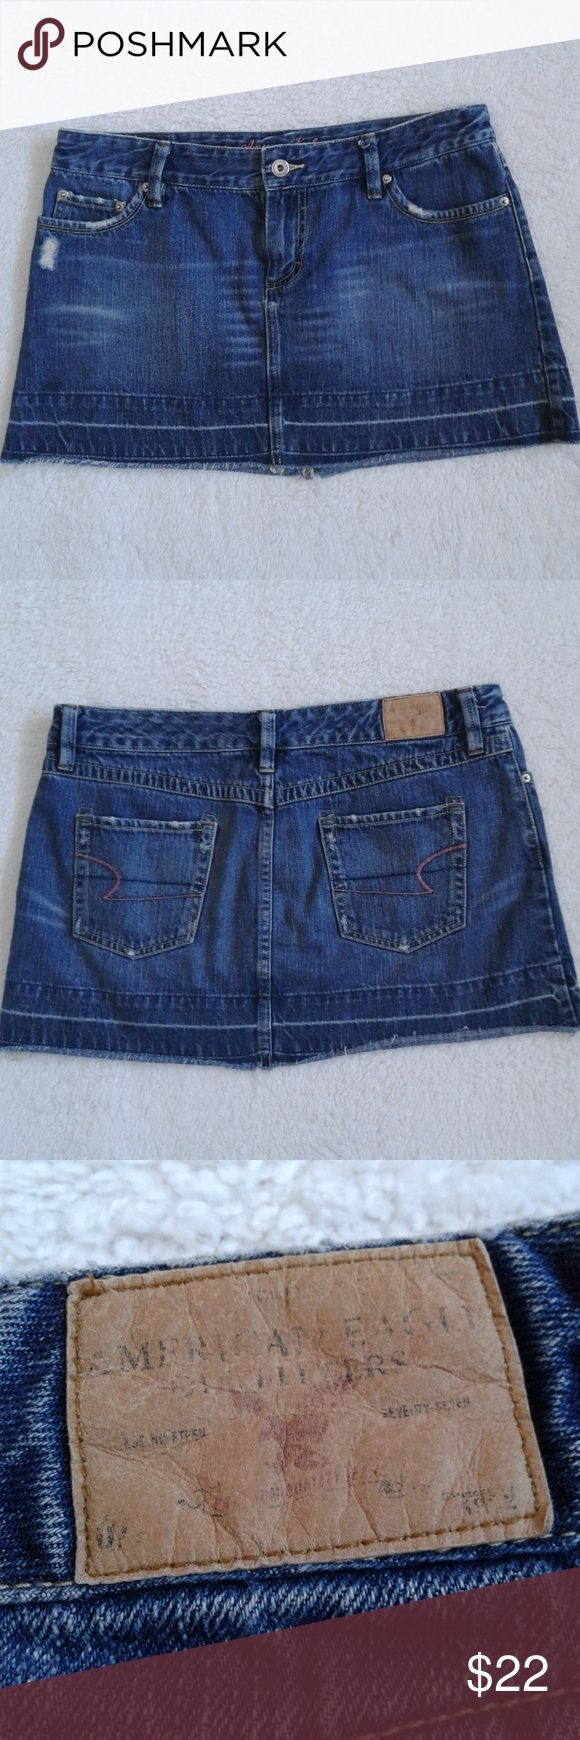 American Eagle Denim Mini Skirt Great condition. Some distressing. Cute mini skirt perfect for the summer months!  Materials:  100% cotton   Approximate measurements:  Waist: 17 inches  Length: 13 inches down the outer seam, 12 inches down the middle seam (photo above, sorry the lighting is making the skirt look lighter in this photo) Hem: 21 1/2 inches   Bundle up! Offers are always welcome!  Any questions, just ask! American Eagle Outfitters Skirts Mini